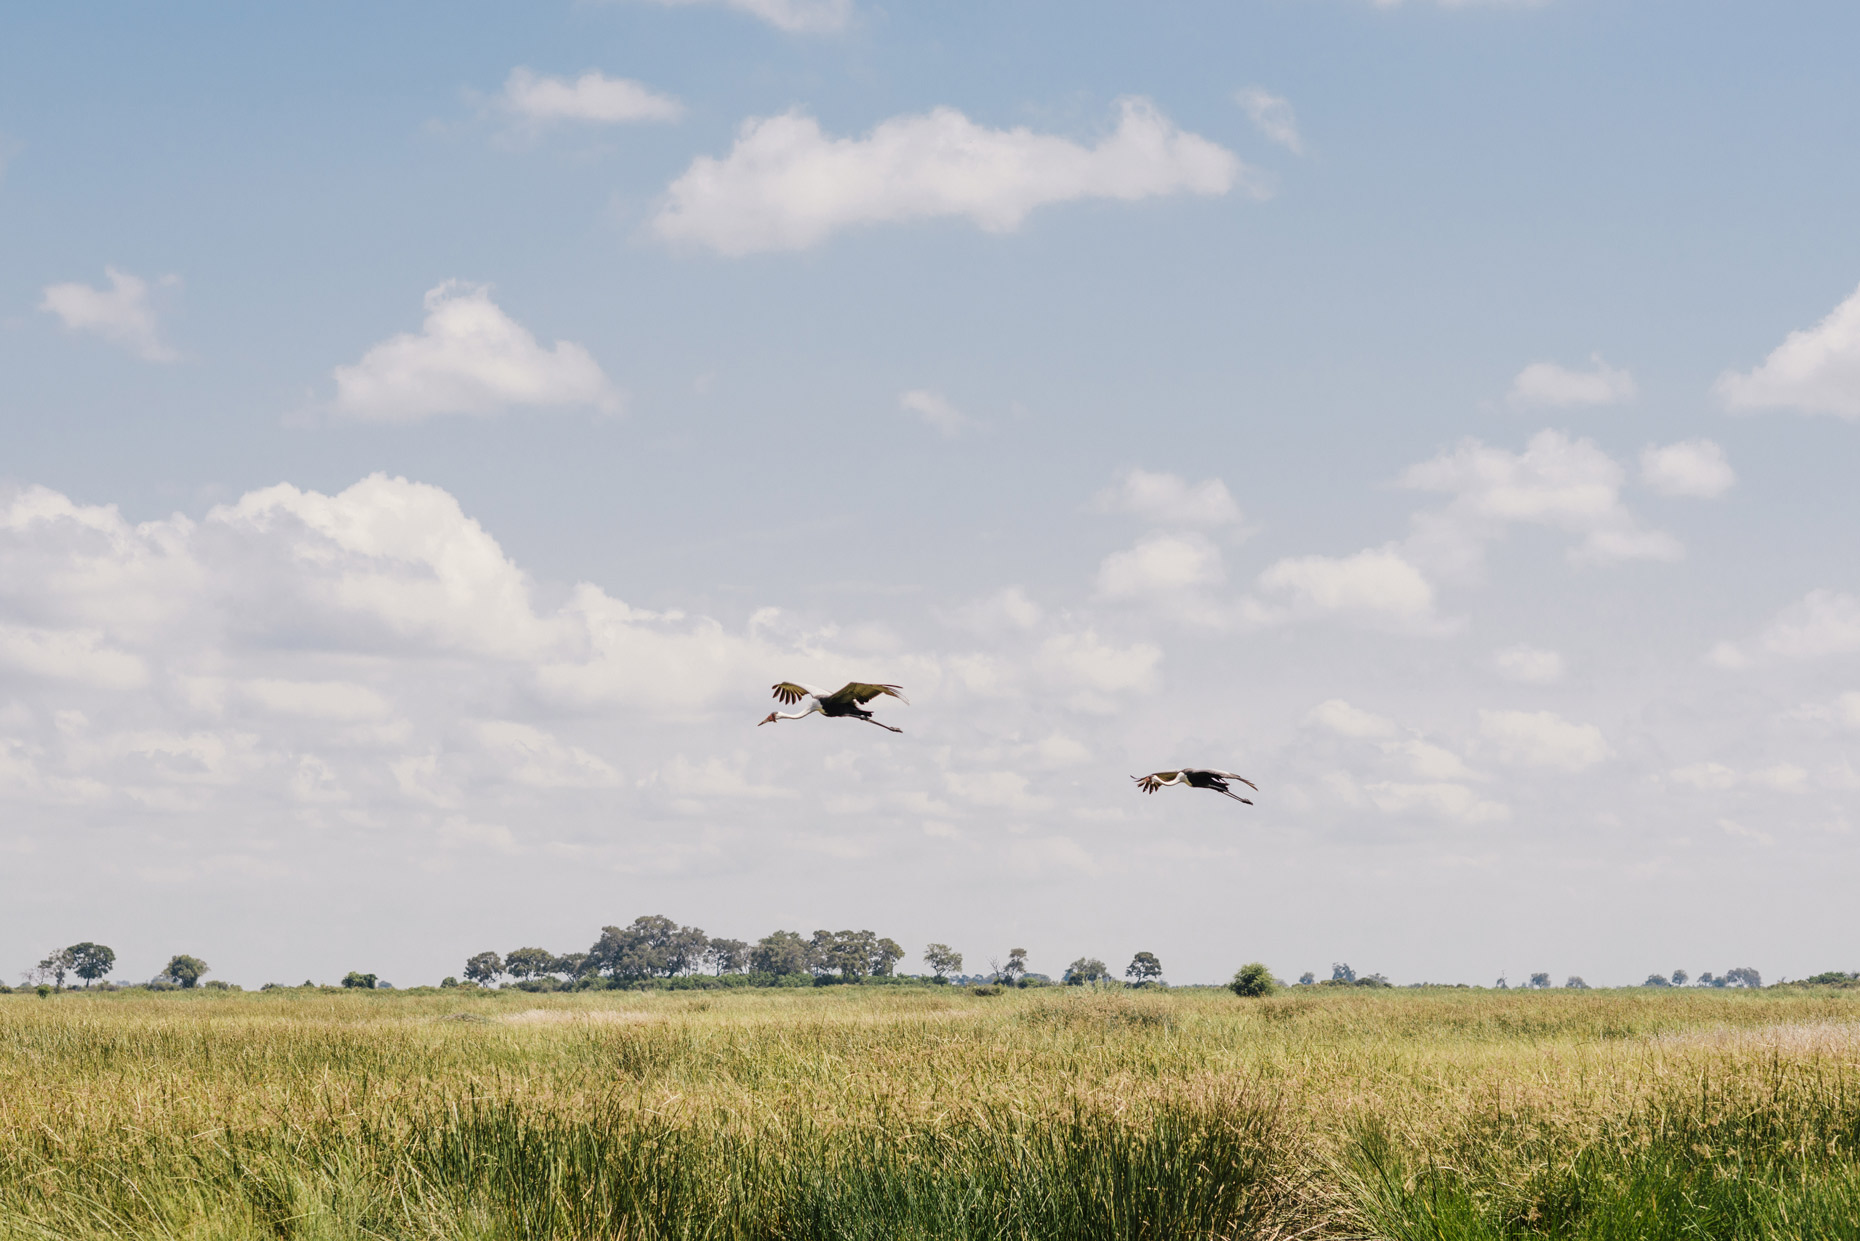 Birds-flying-below-cloudy-sky-on-safari